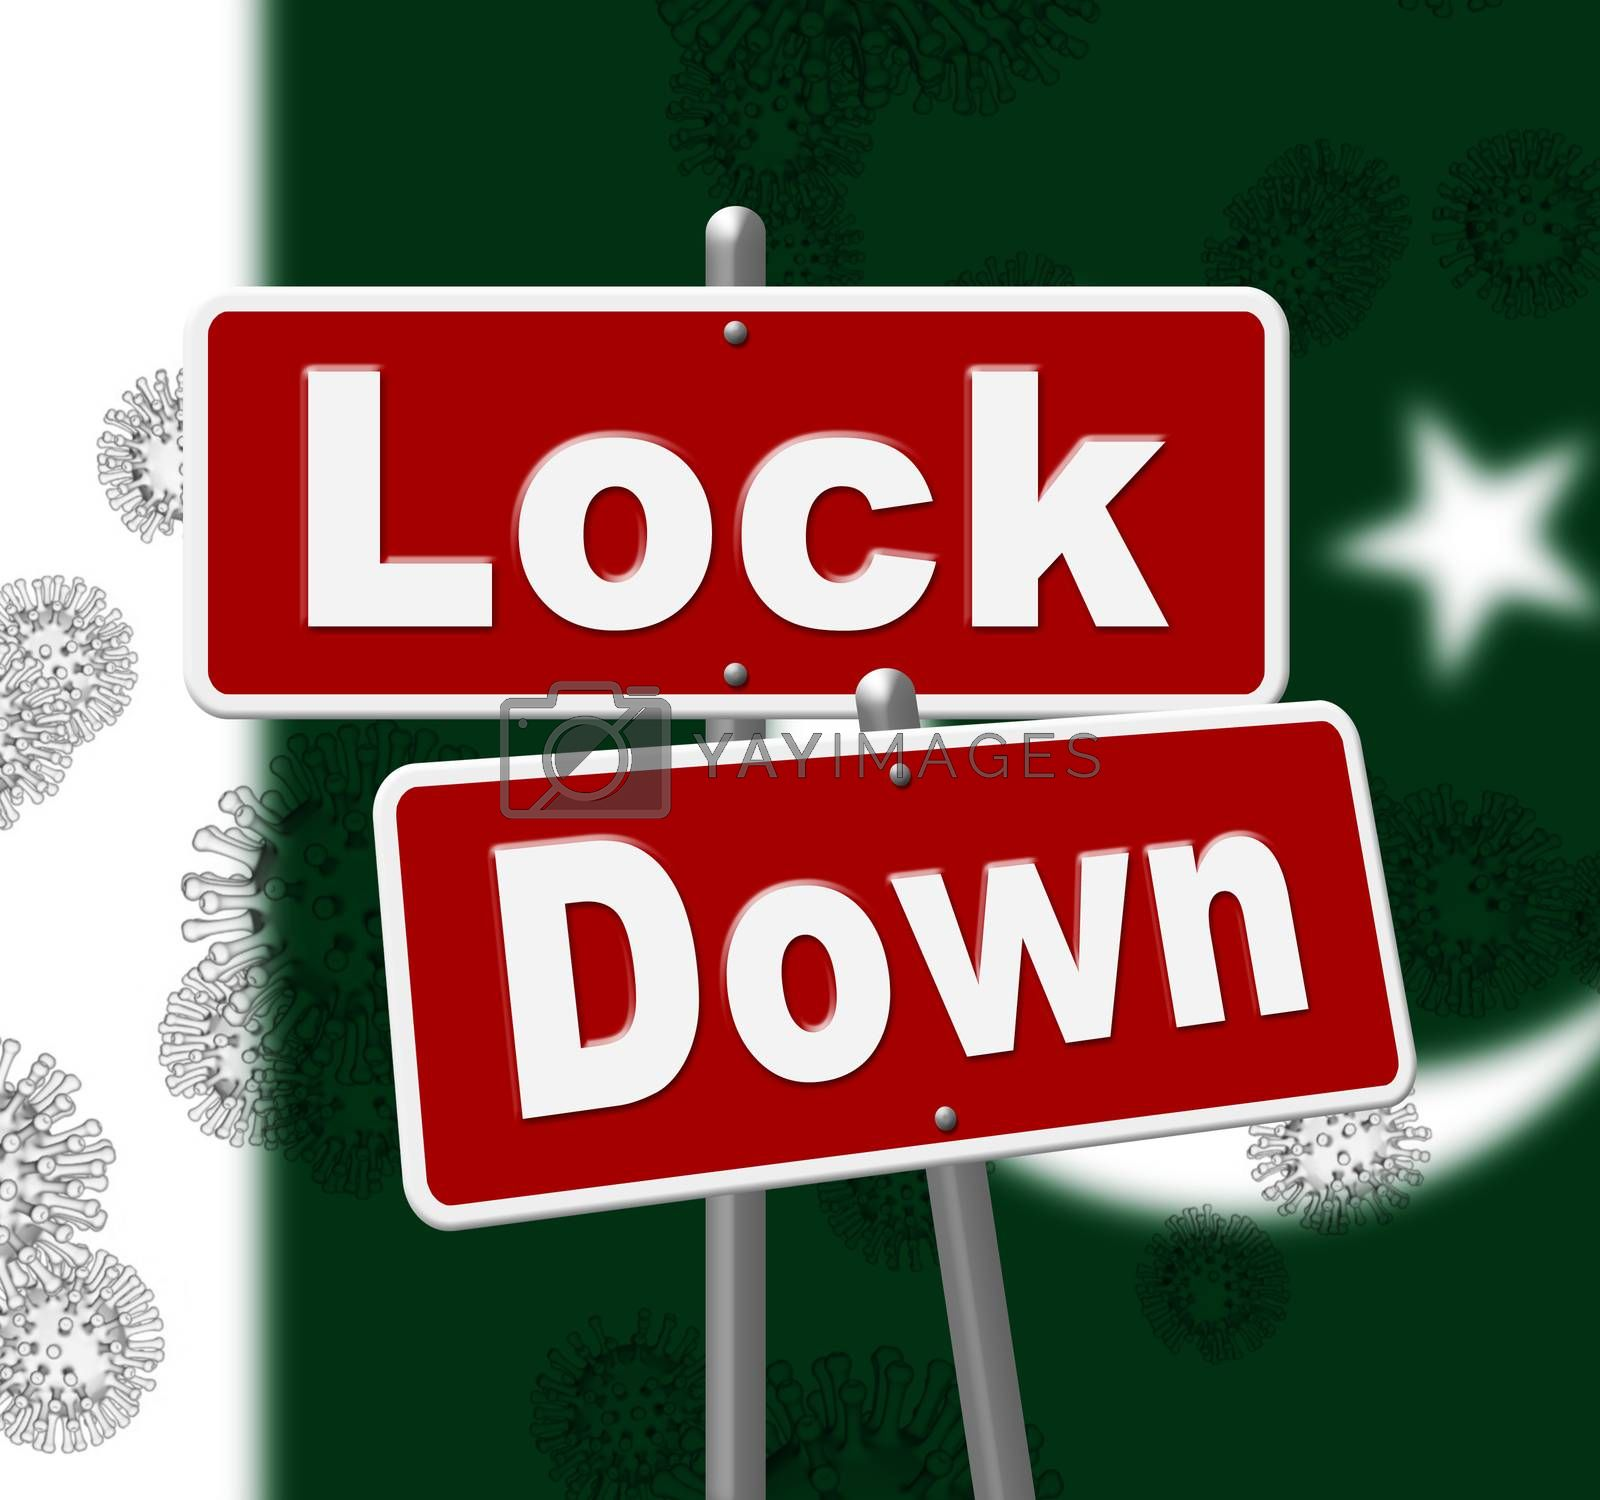 Pakistan lockdown sign against coronavirus covid-19. Pakistani stay home order to enforce self isolation and stop infection - 3d Illustration